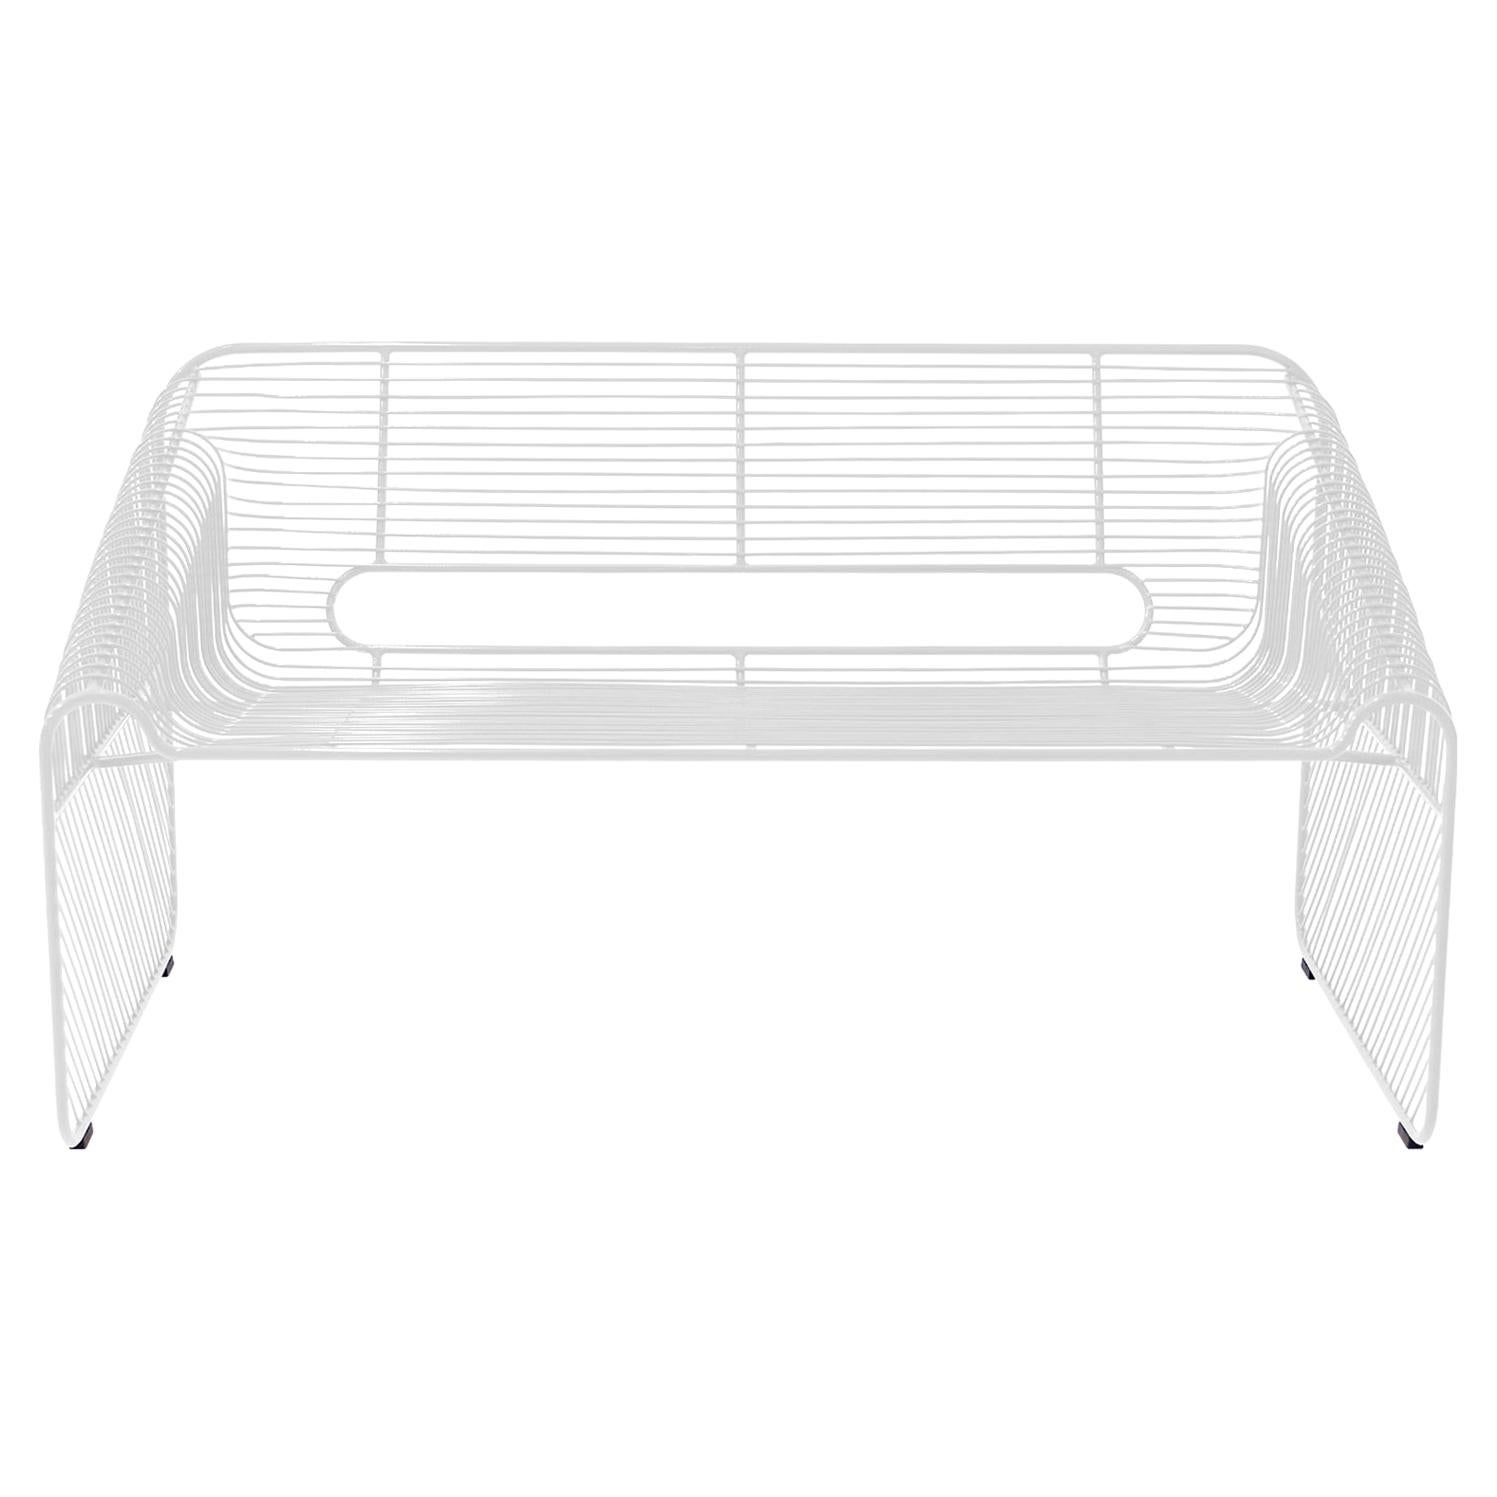 Modern Loveseat, Wire Lounge Chair in Wire by Bend Goods, White